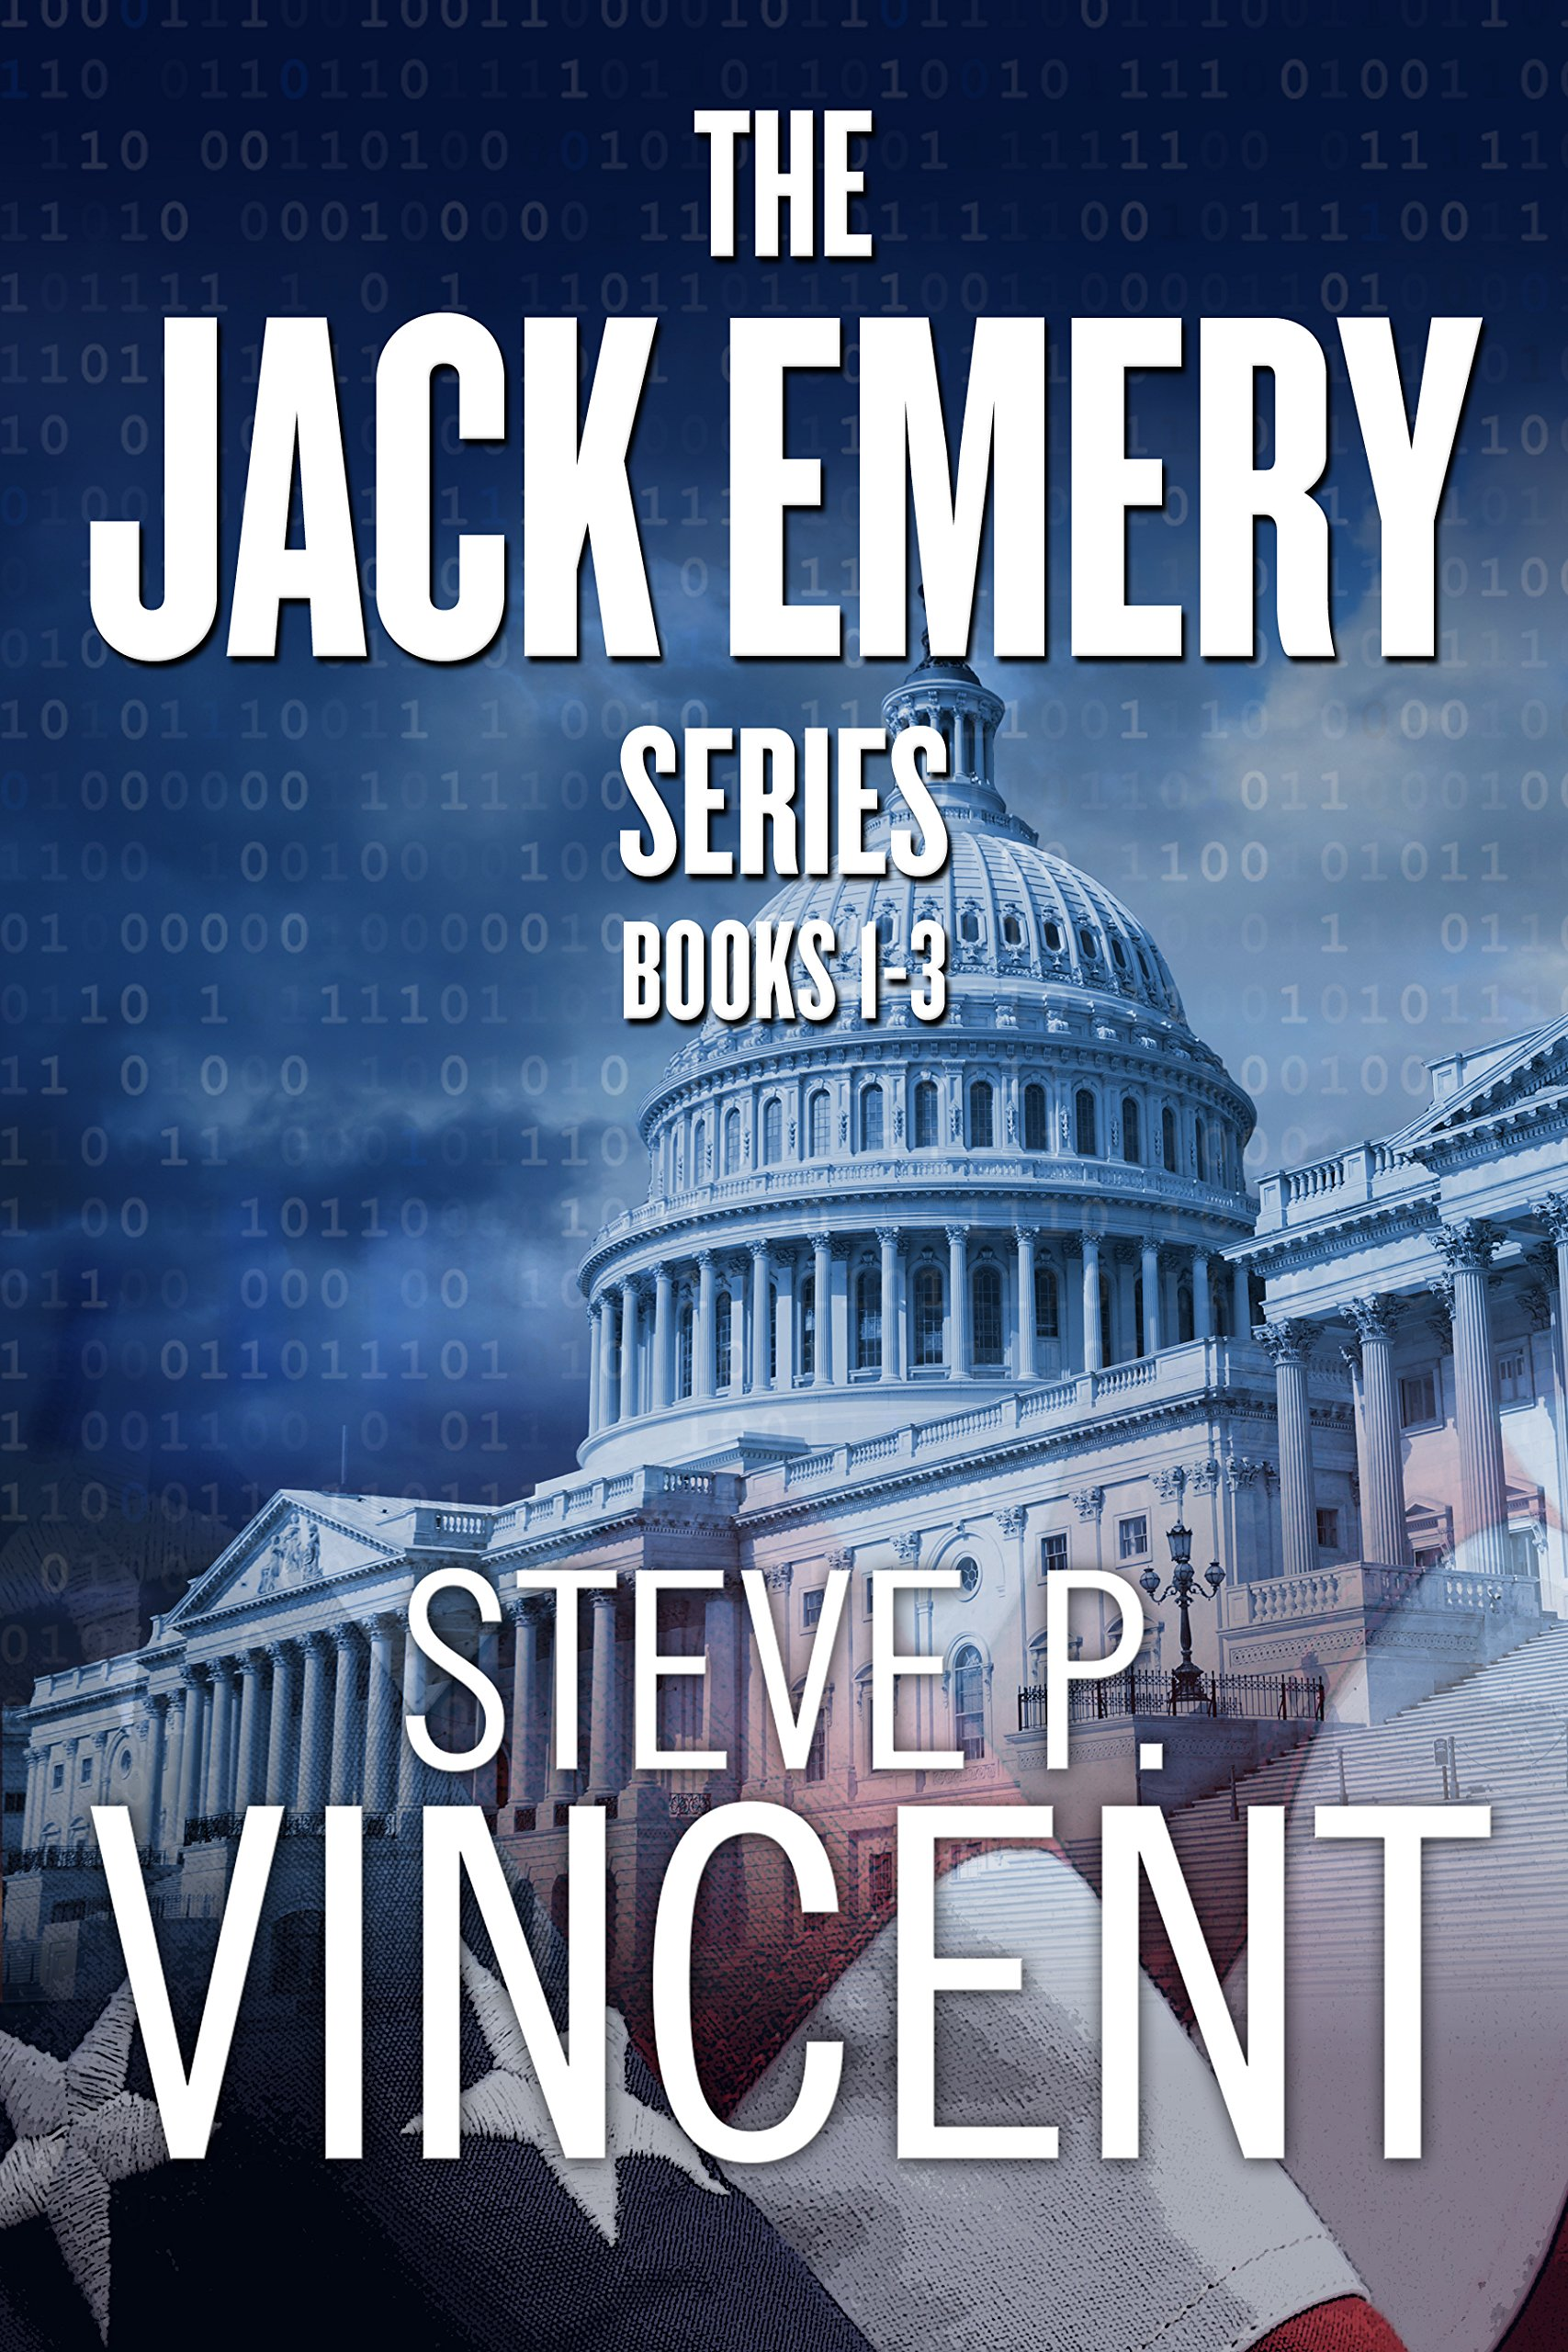 The Jack Emery Series: Books 1-3